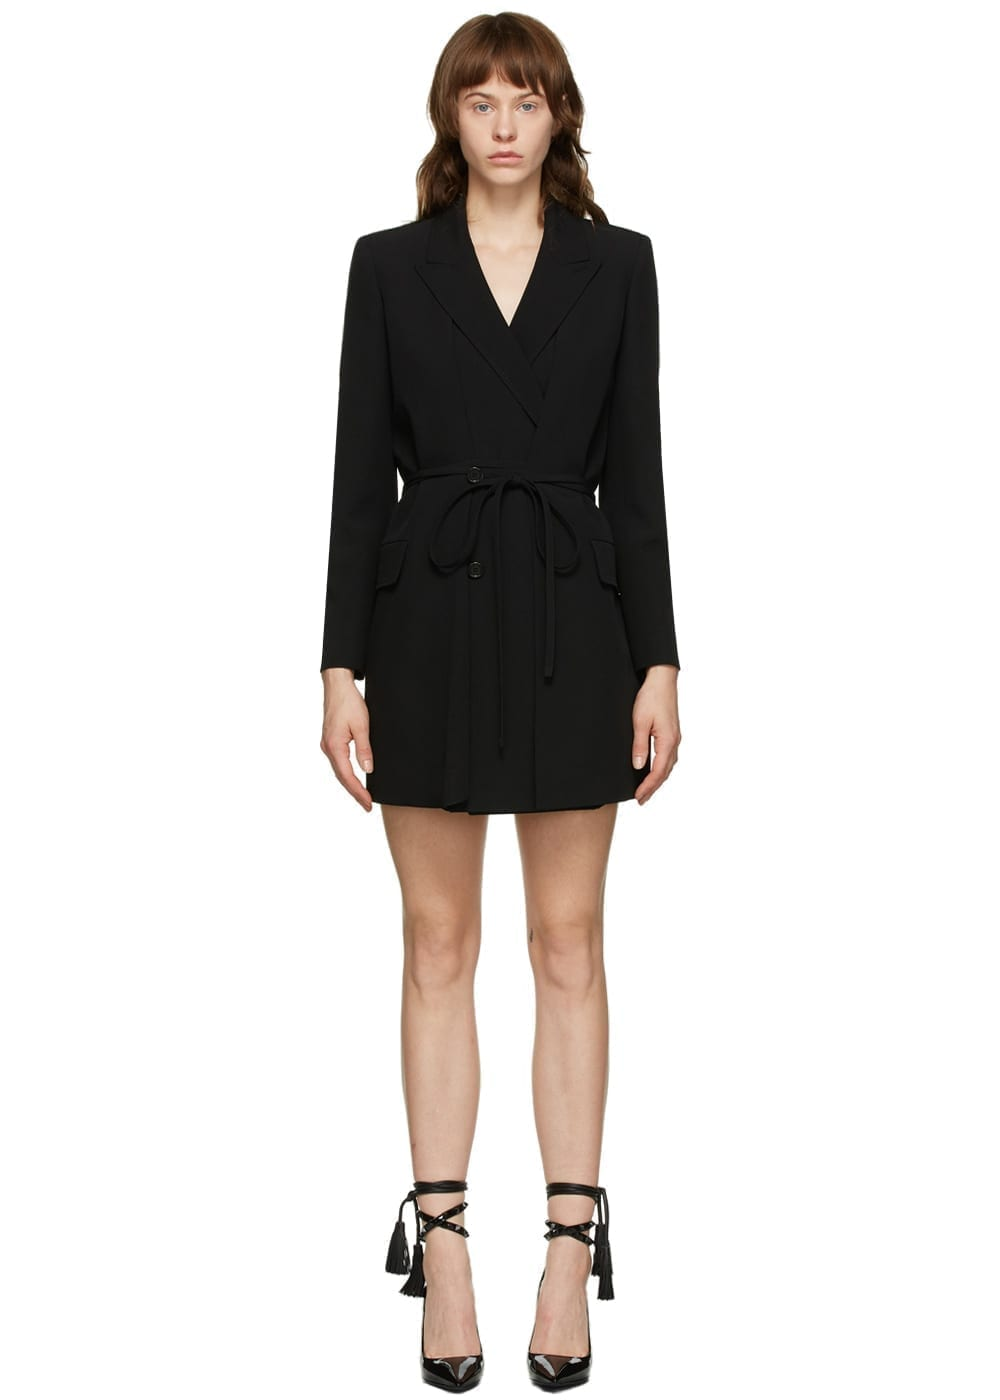 VALENTINO Black Wool & Silk Blazer Dress